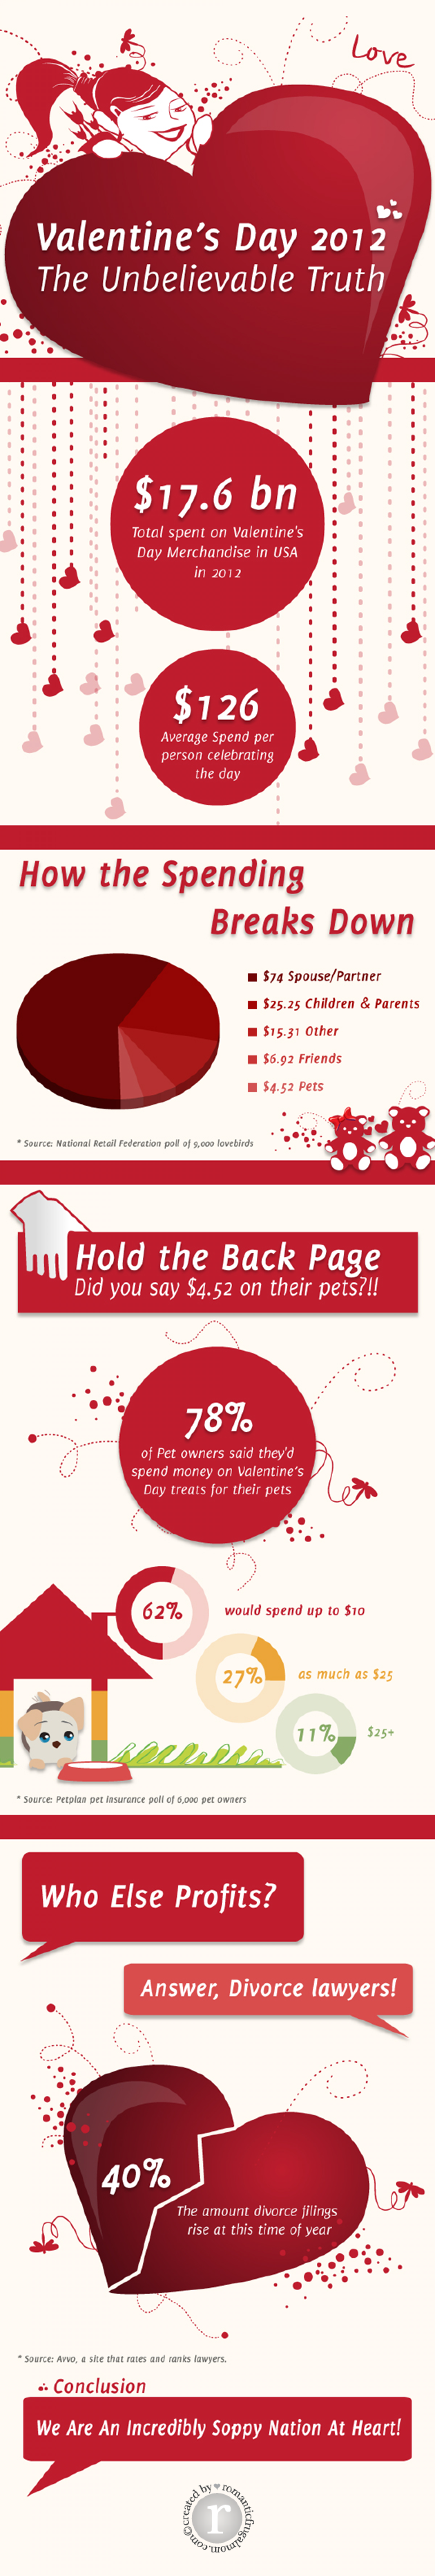 Valentine's Day 2012 Unbelievable Truth Infographic